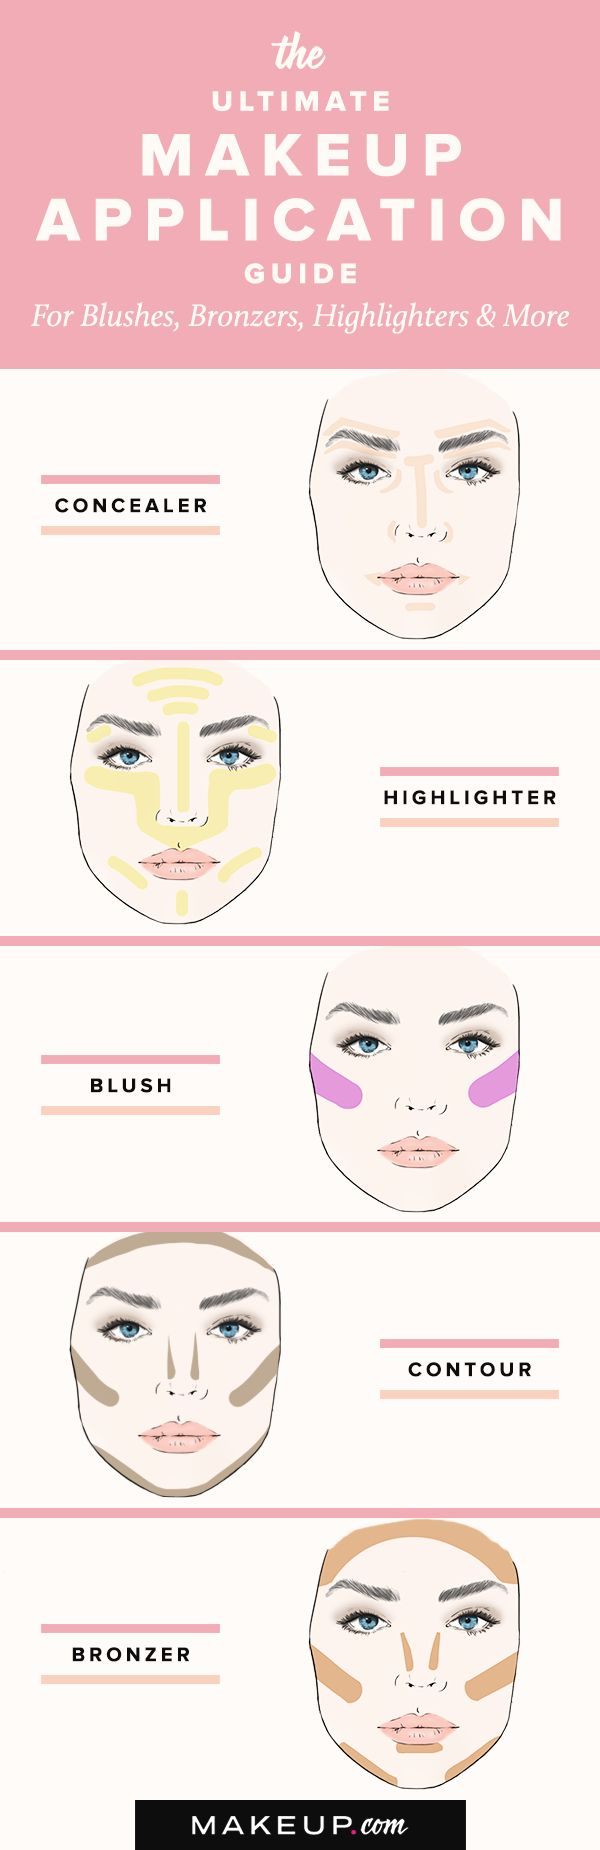 A flawless face is the basis of every great makeup look, and while a great skincare regimen, foundation and concealer work wonders, they only work when you know how to apply them. This is the only guide you need to know how to apply blush, bronzer and more.